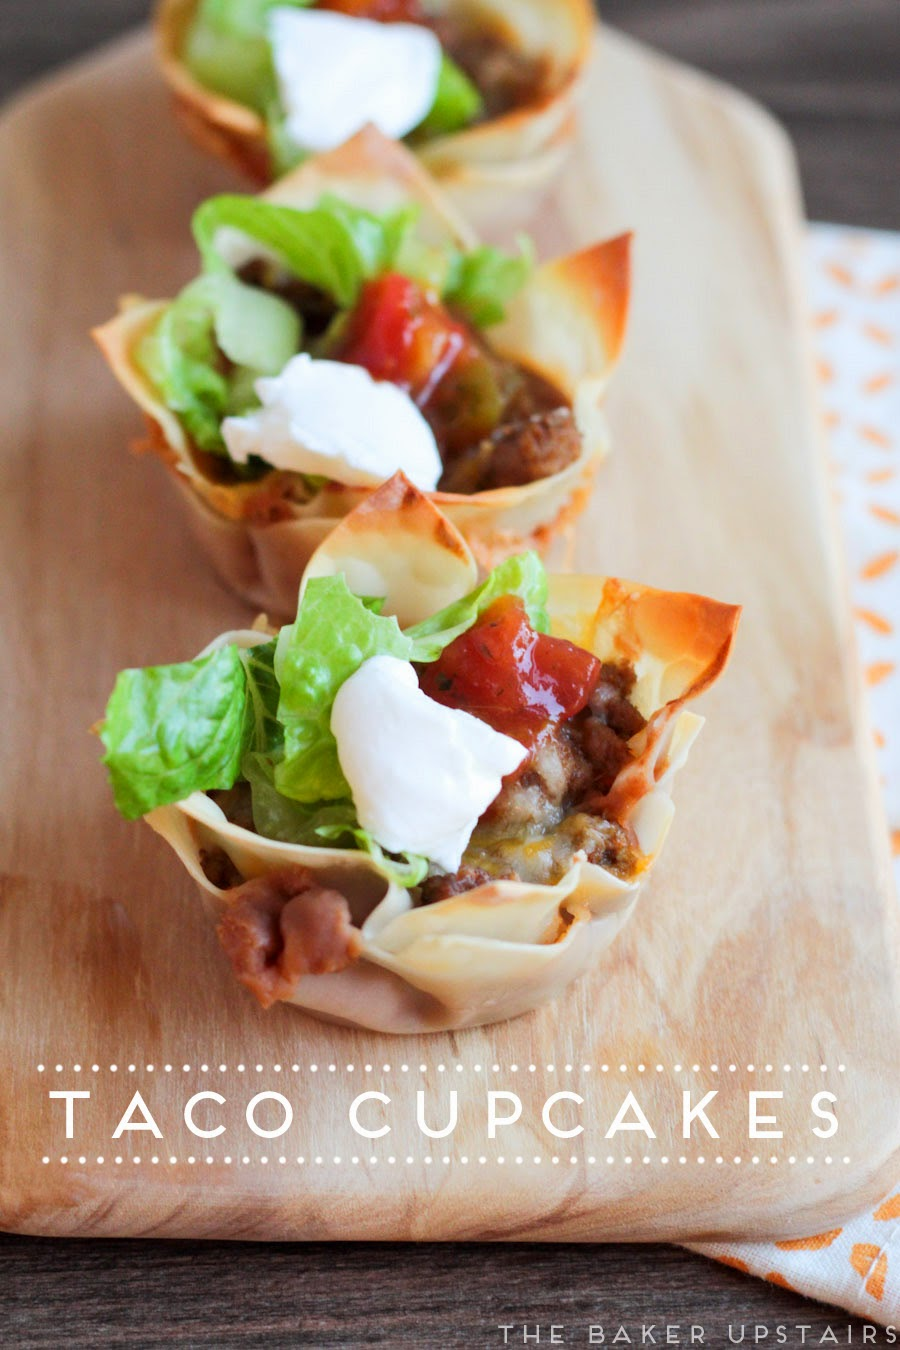 These taco cupcakes are a fun twist on traditional tacos, and irresistibly delicious!